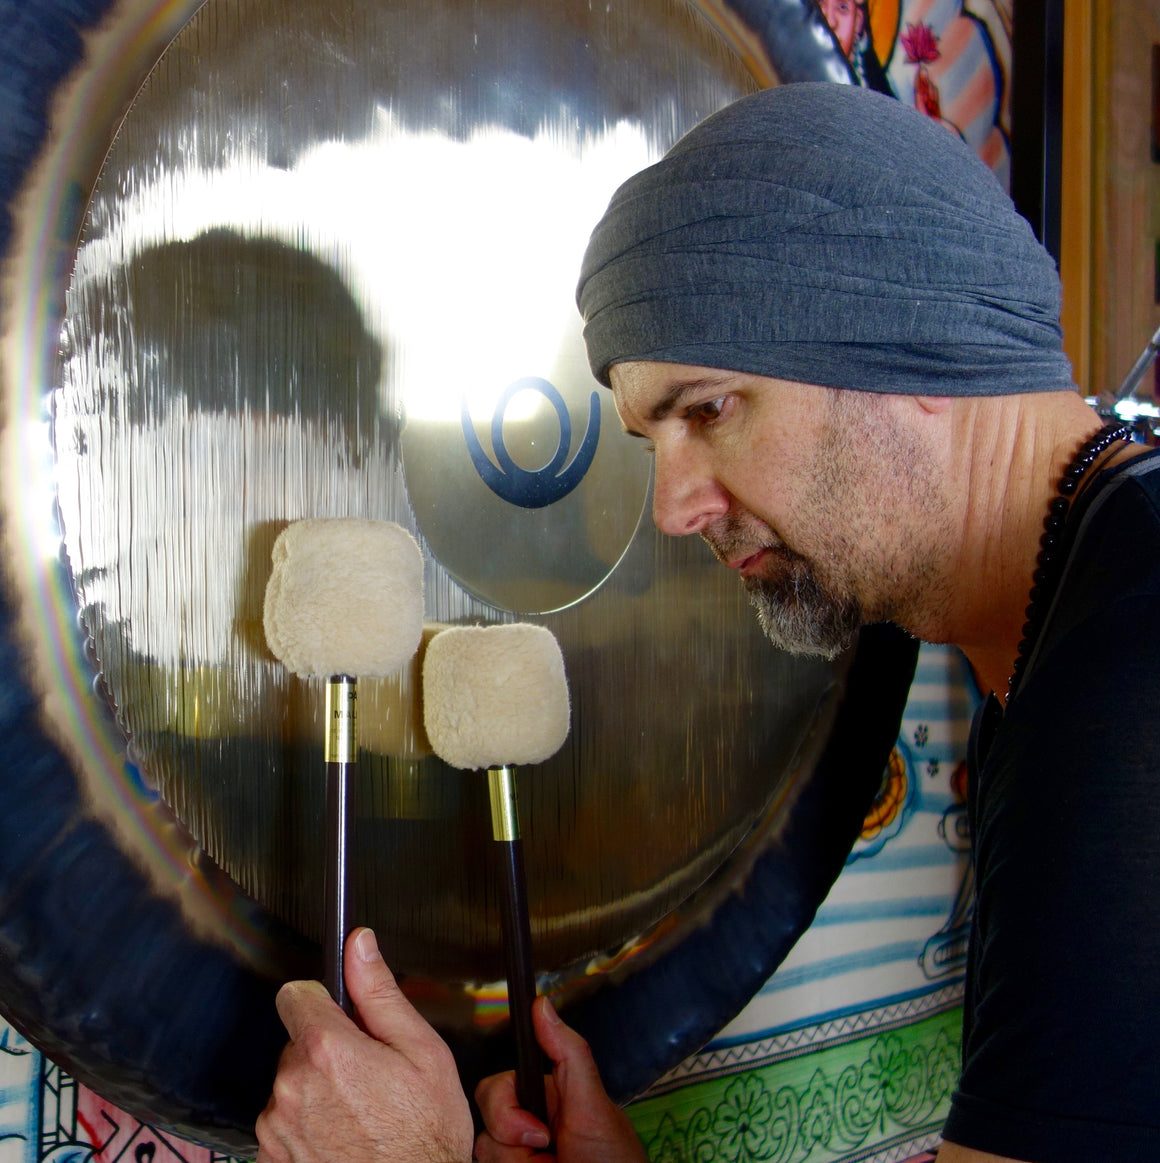 June 20, 2019 - Thursday 7-8:30pm -  Gong Bath Meditation - with Wayne Marto